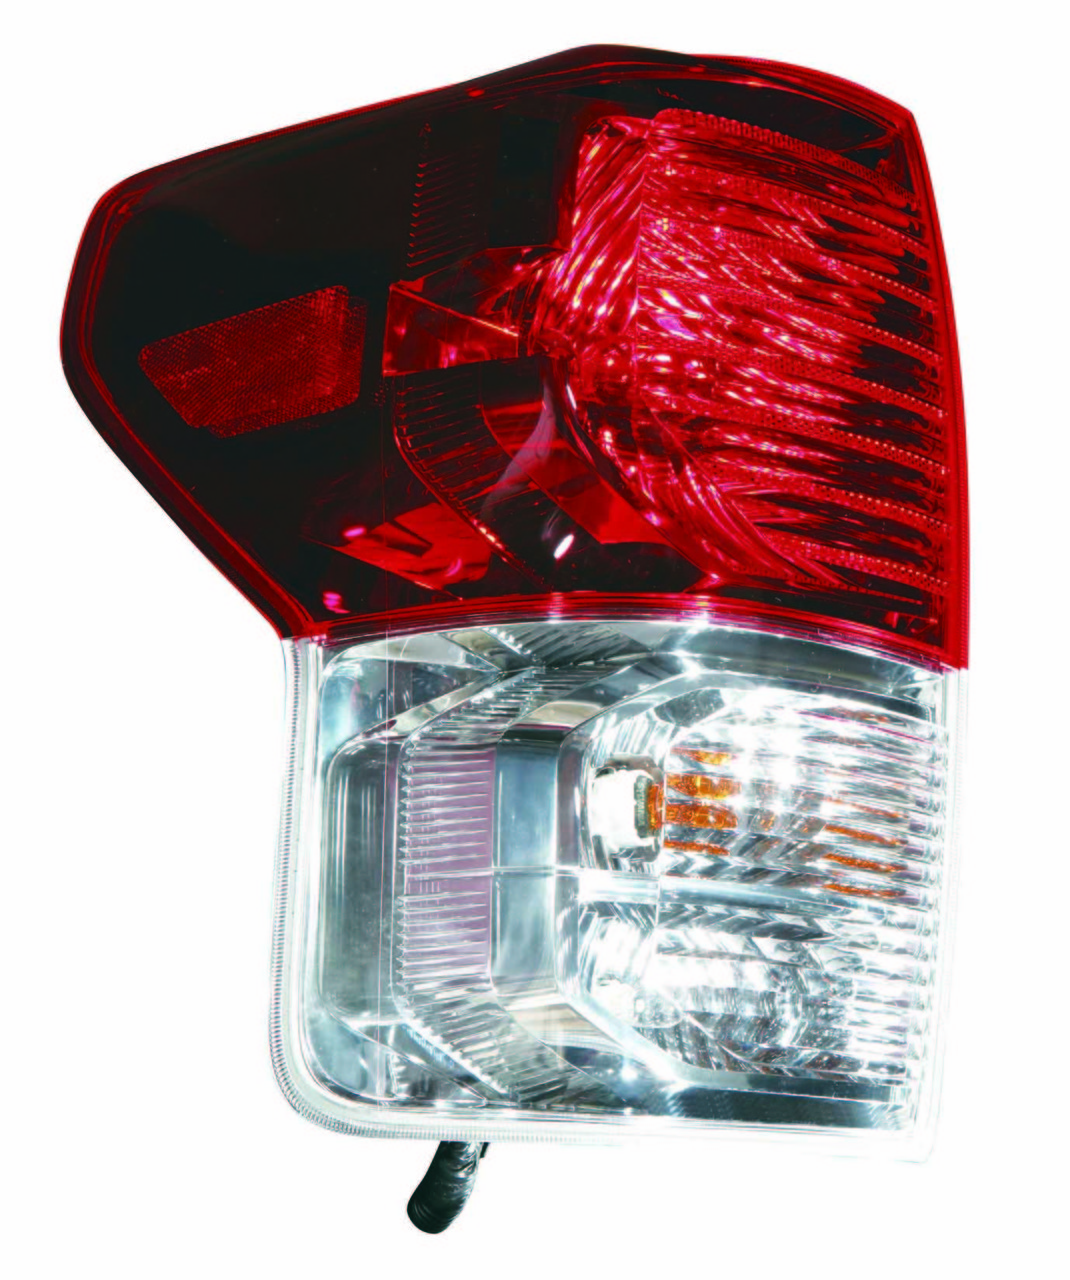 Toyota Tundra 2010 2011 2012 2013 tail light left driver